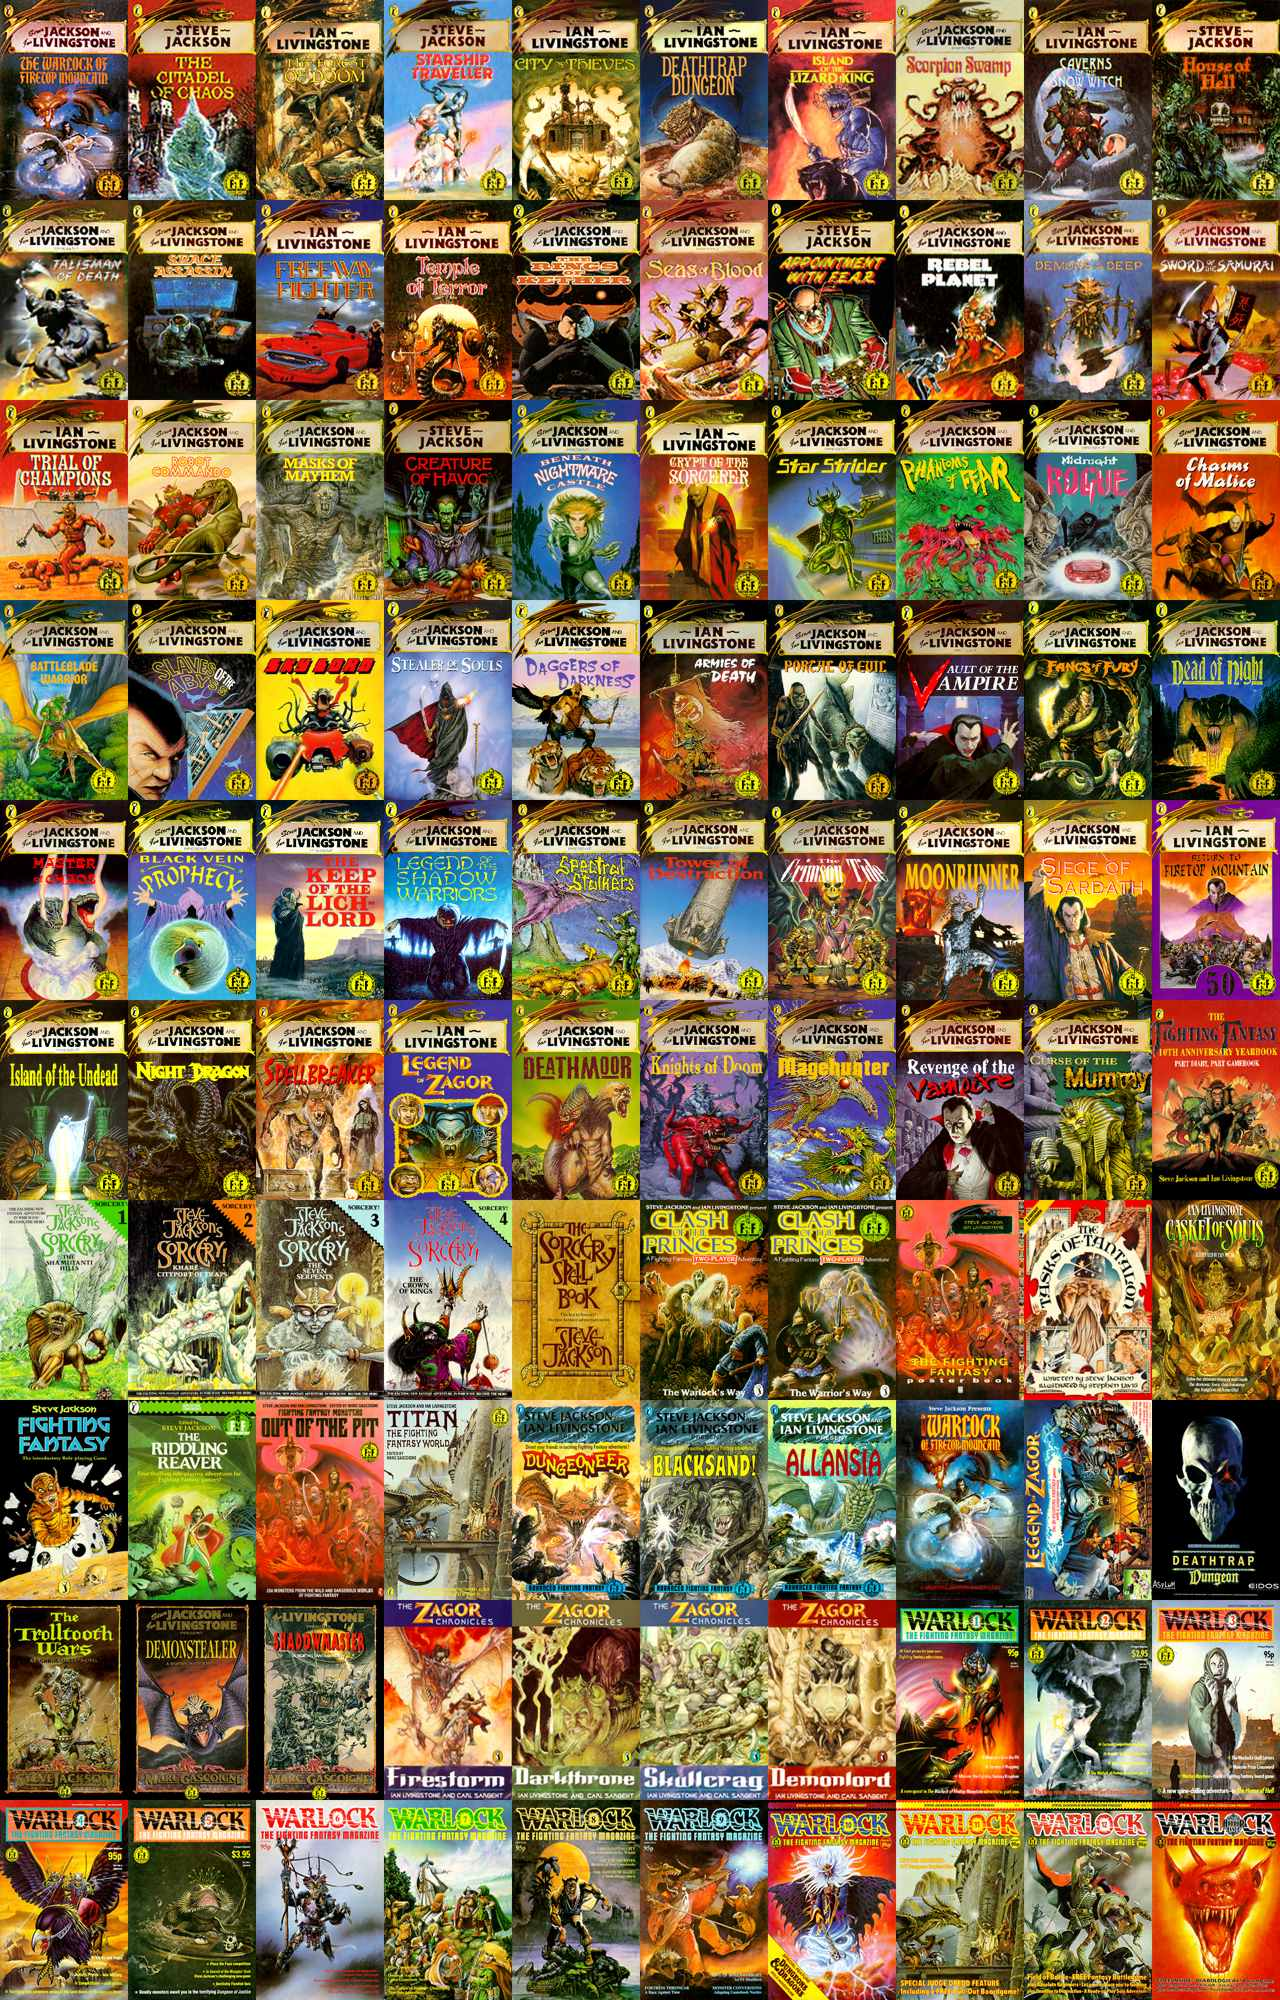 Book Cover Photography Games : Fighting fantasy gamebooks and video games off topic